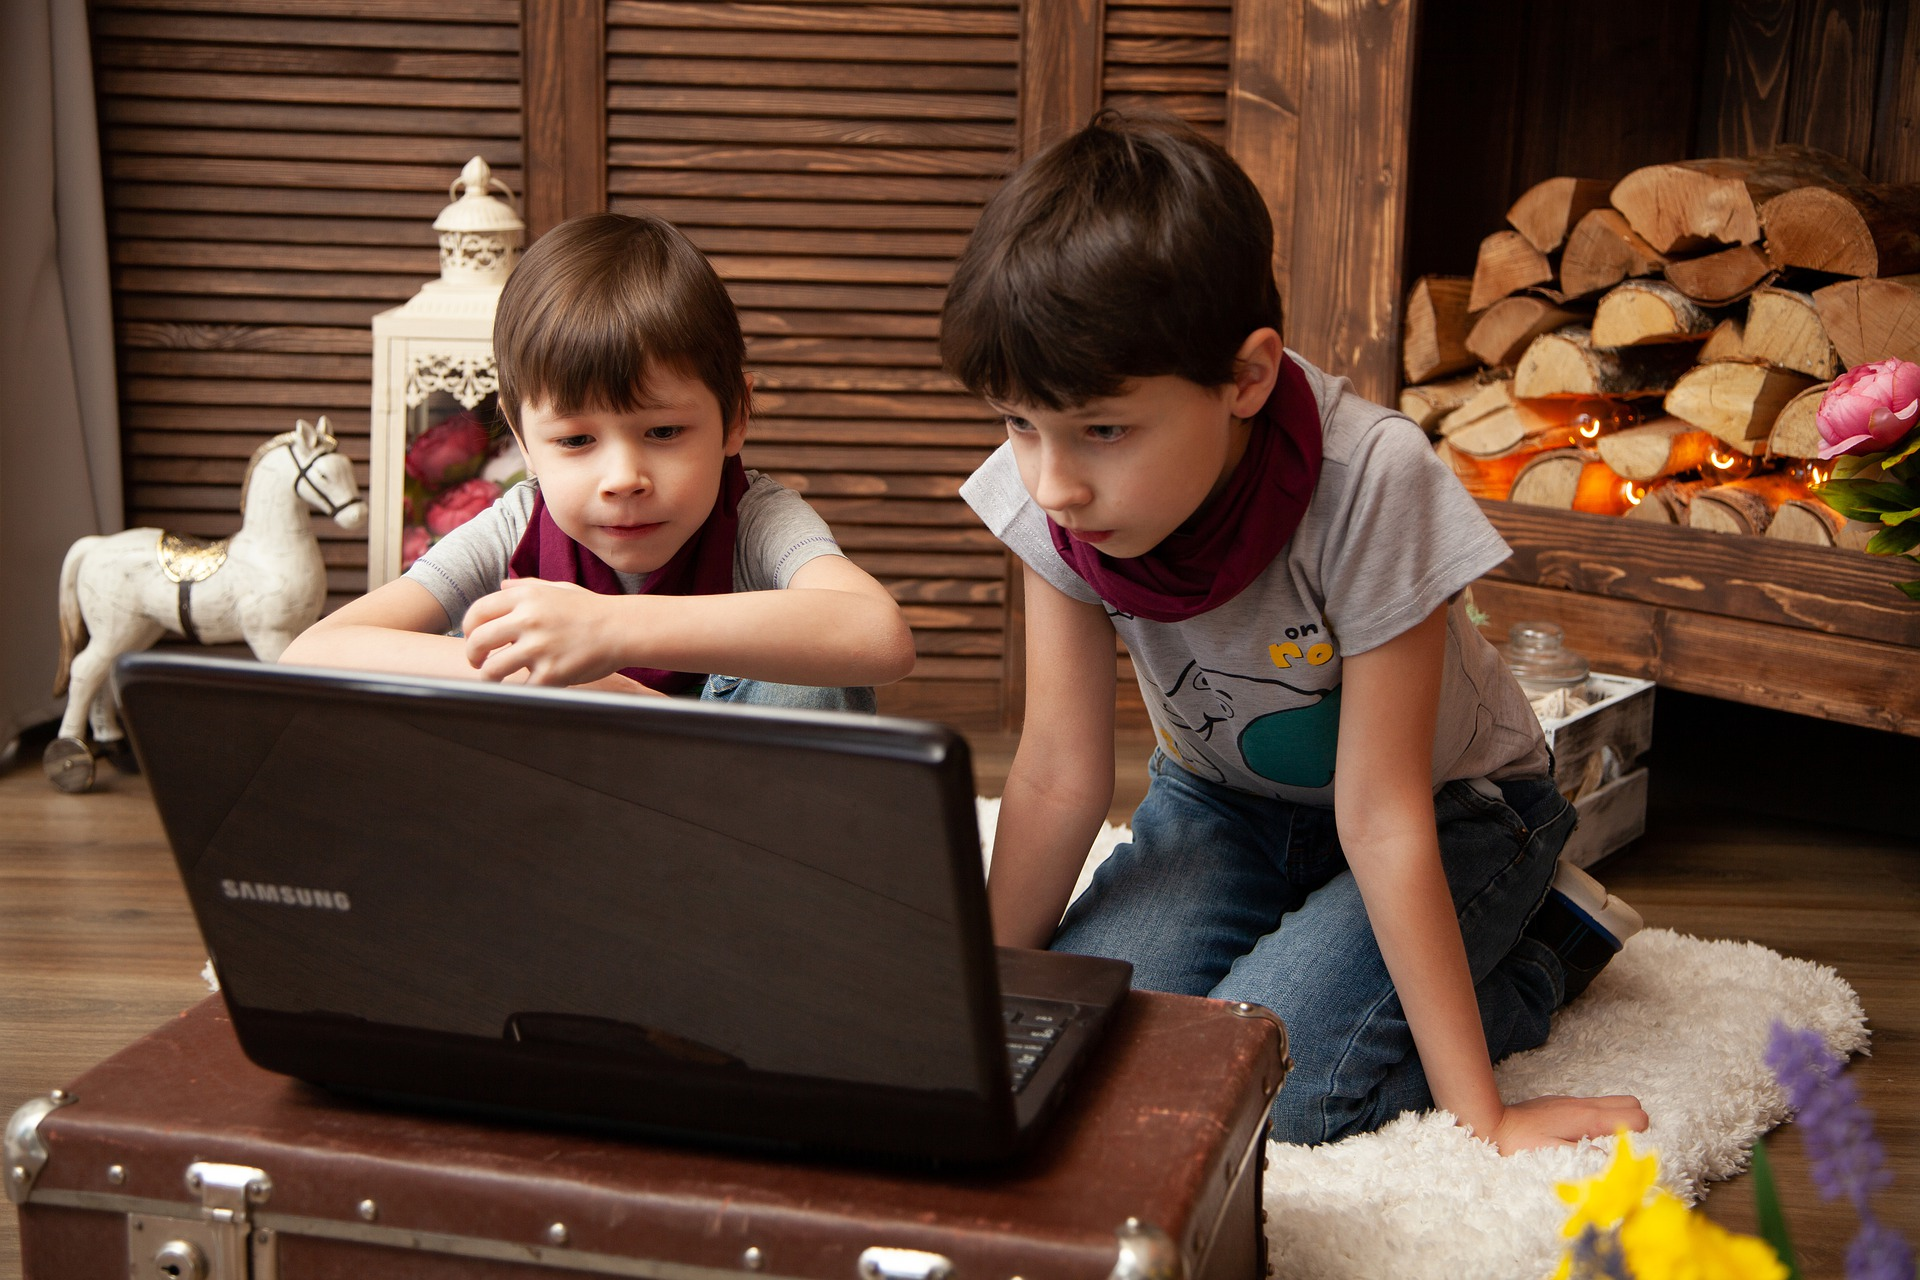 Two boys are side-by-side viewing a computer screen together.